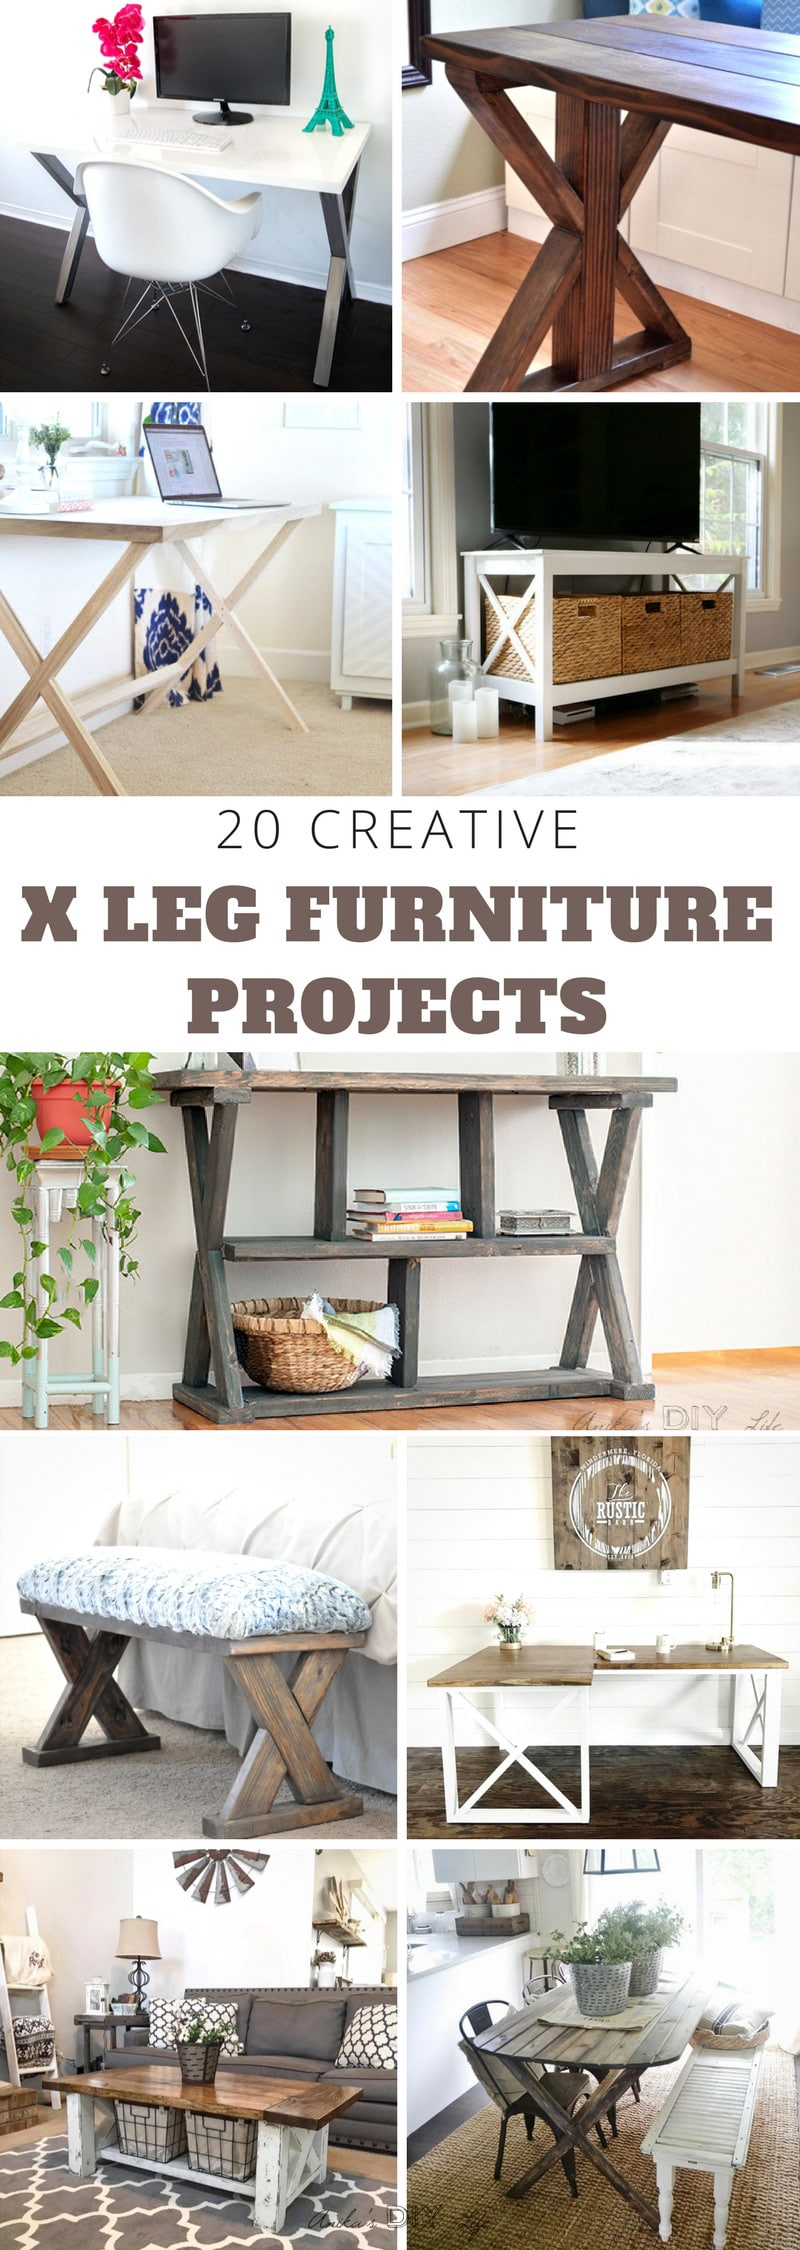 So amazing! All these projects are so creative |X-leg furniture |Farmhouse table and bench ideas | DIY woodworking #woodworking #DIYfurniture #DIYdesk #diydiningtable